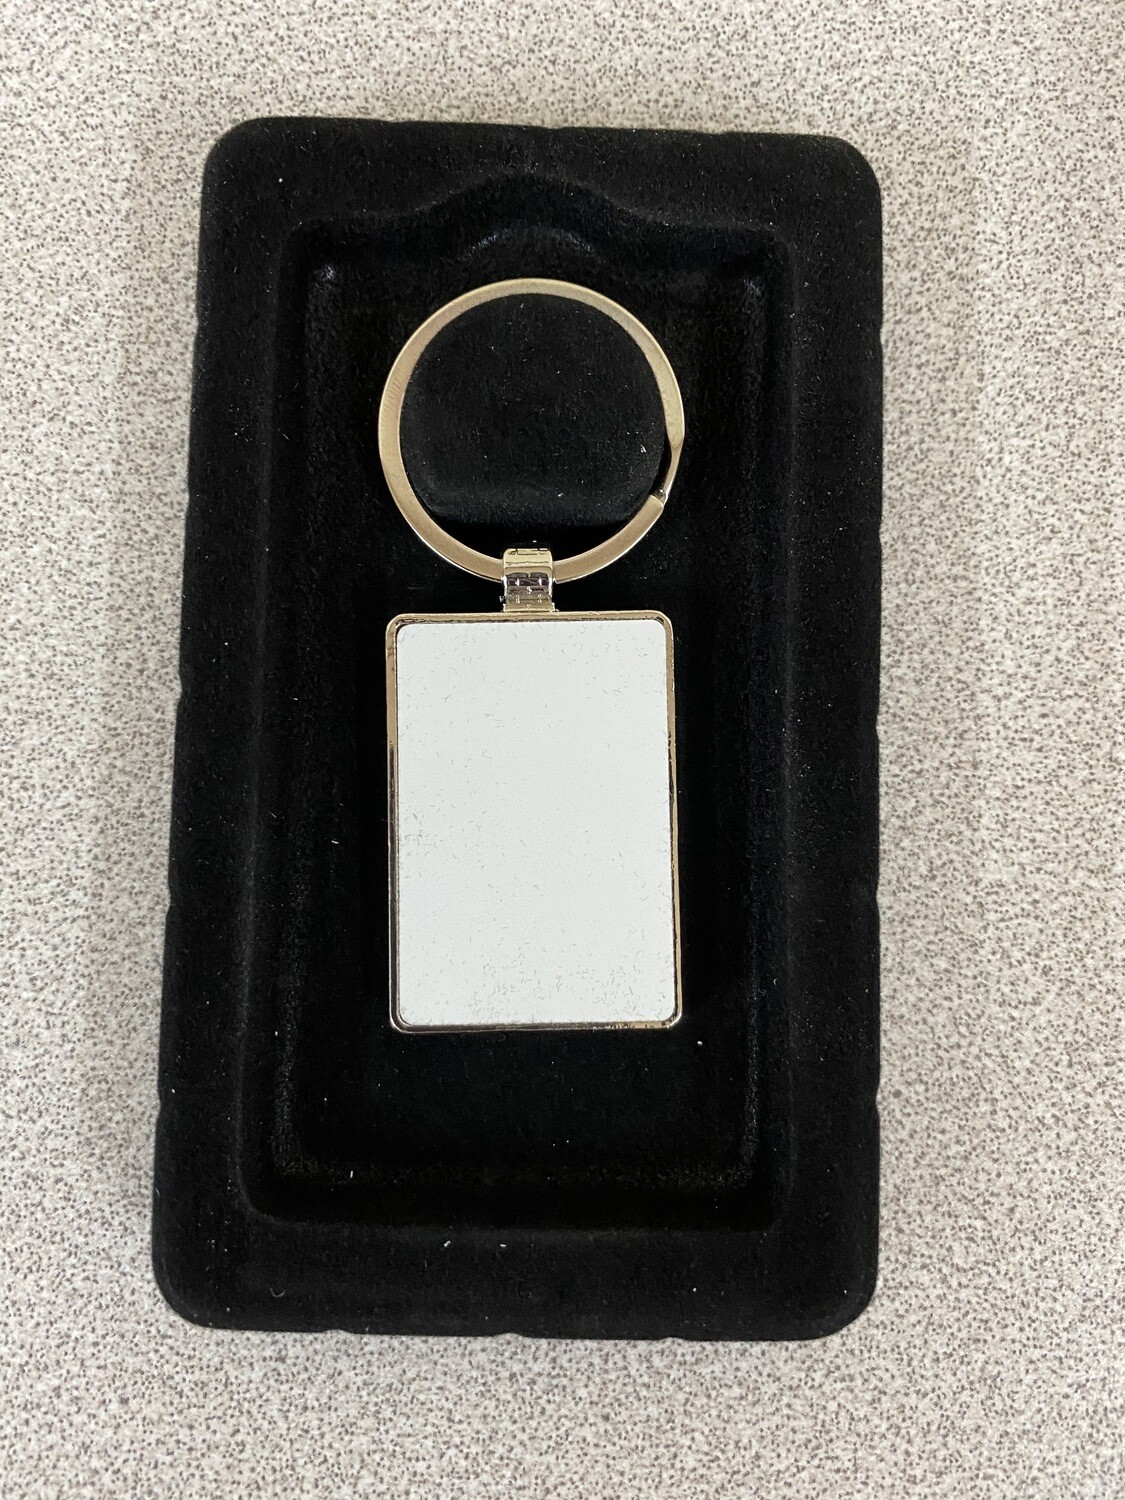 Rectangle silver key ring with aluminium white blank insert